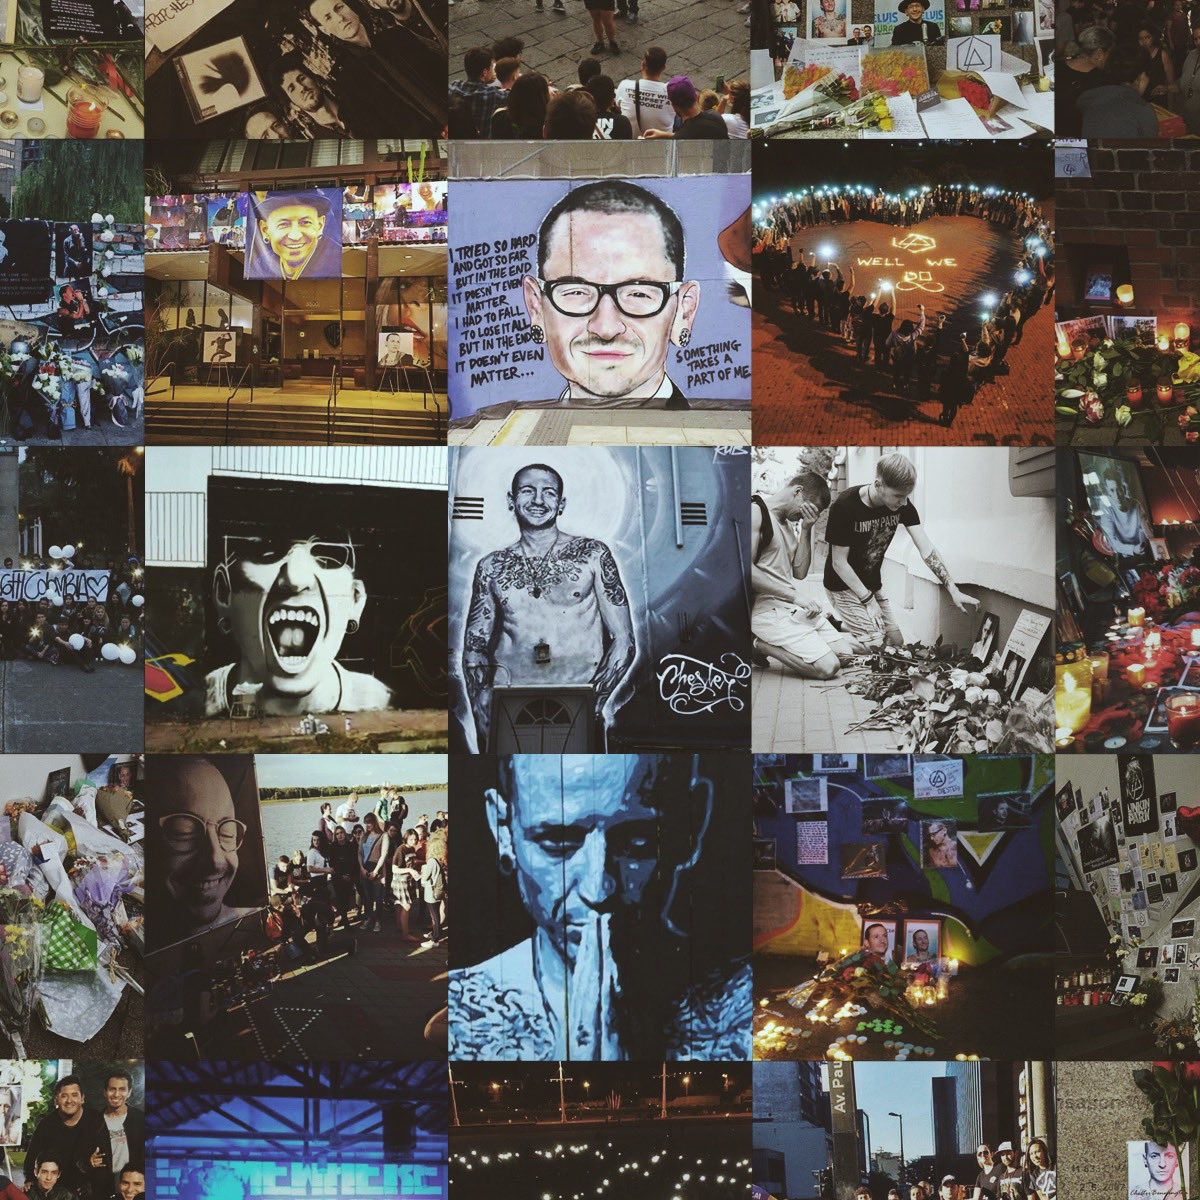 #RIPChester https://t.co/g2ffGLkm8l